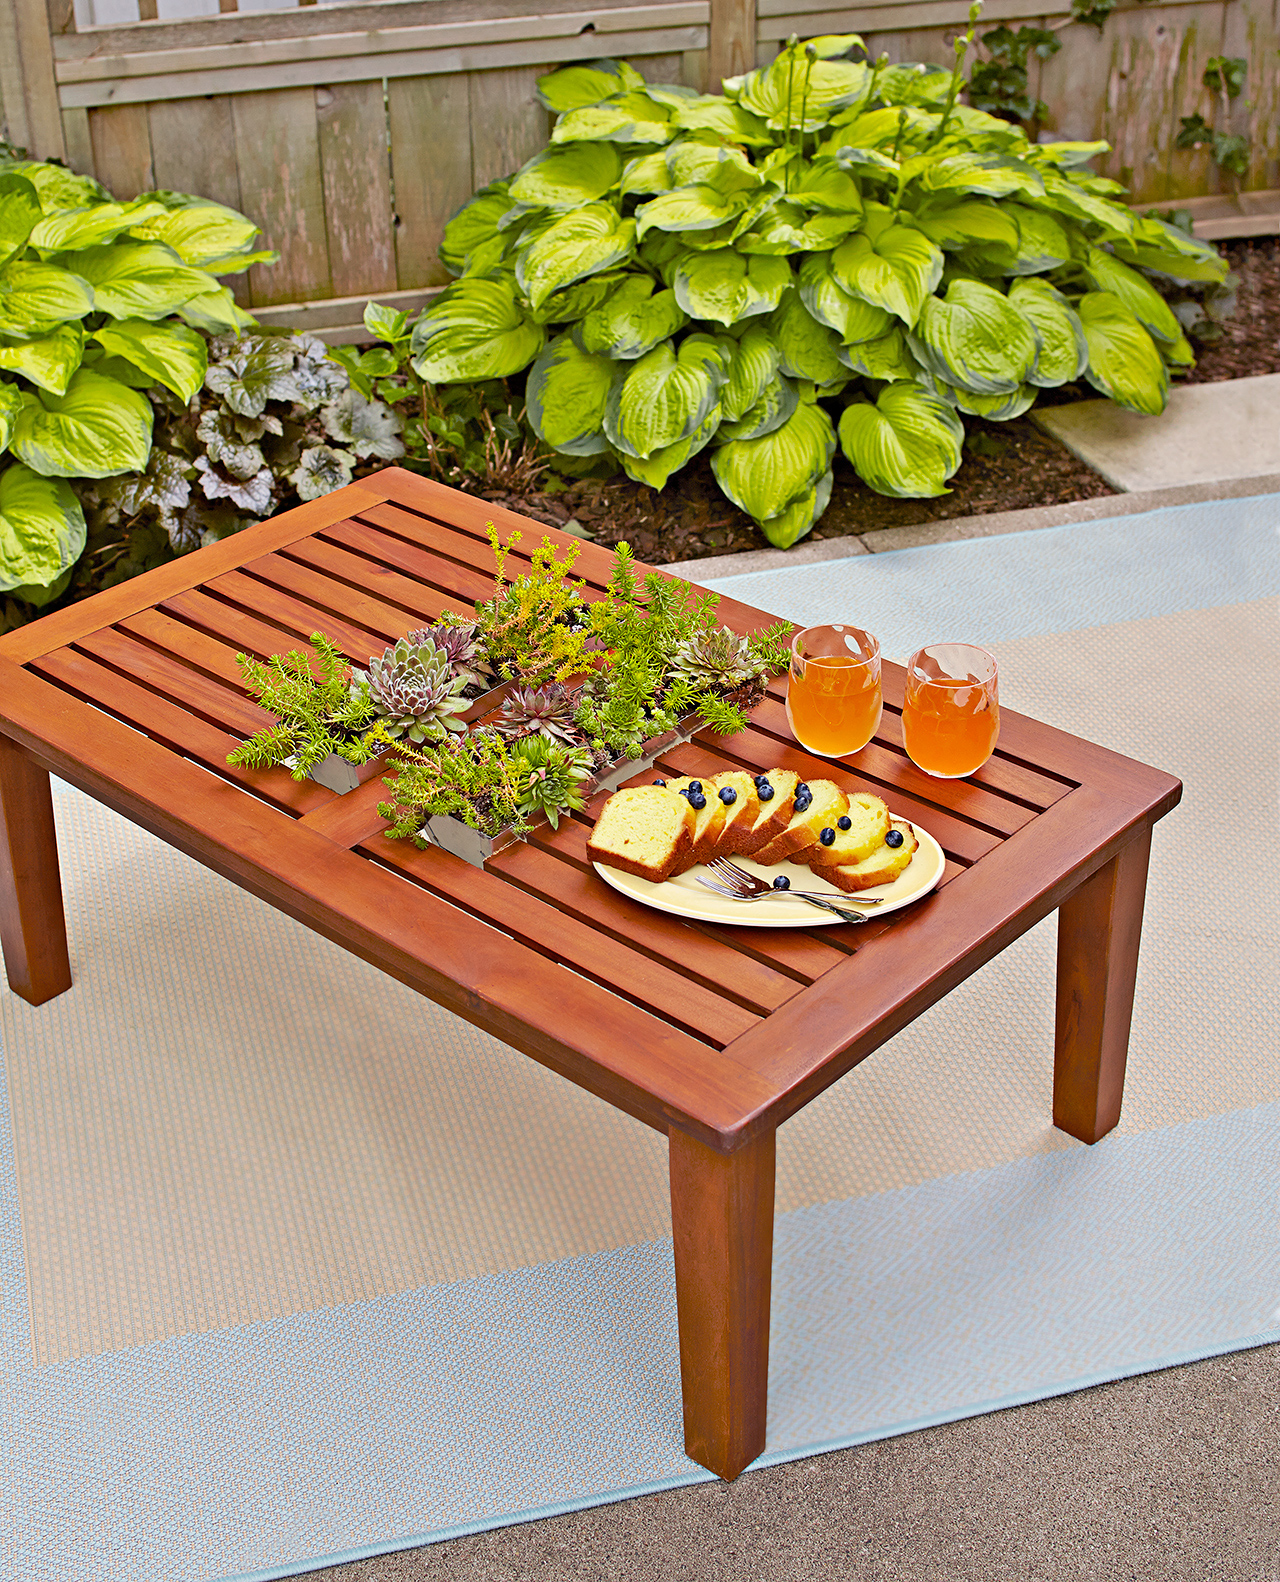 How to Make a Table With an Inset Planter